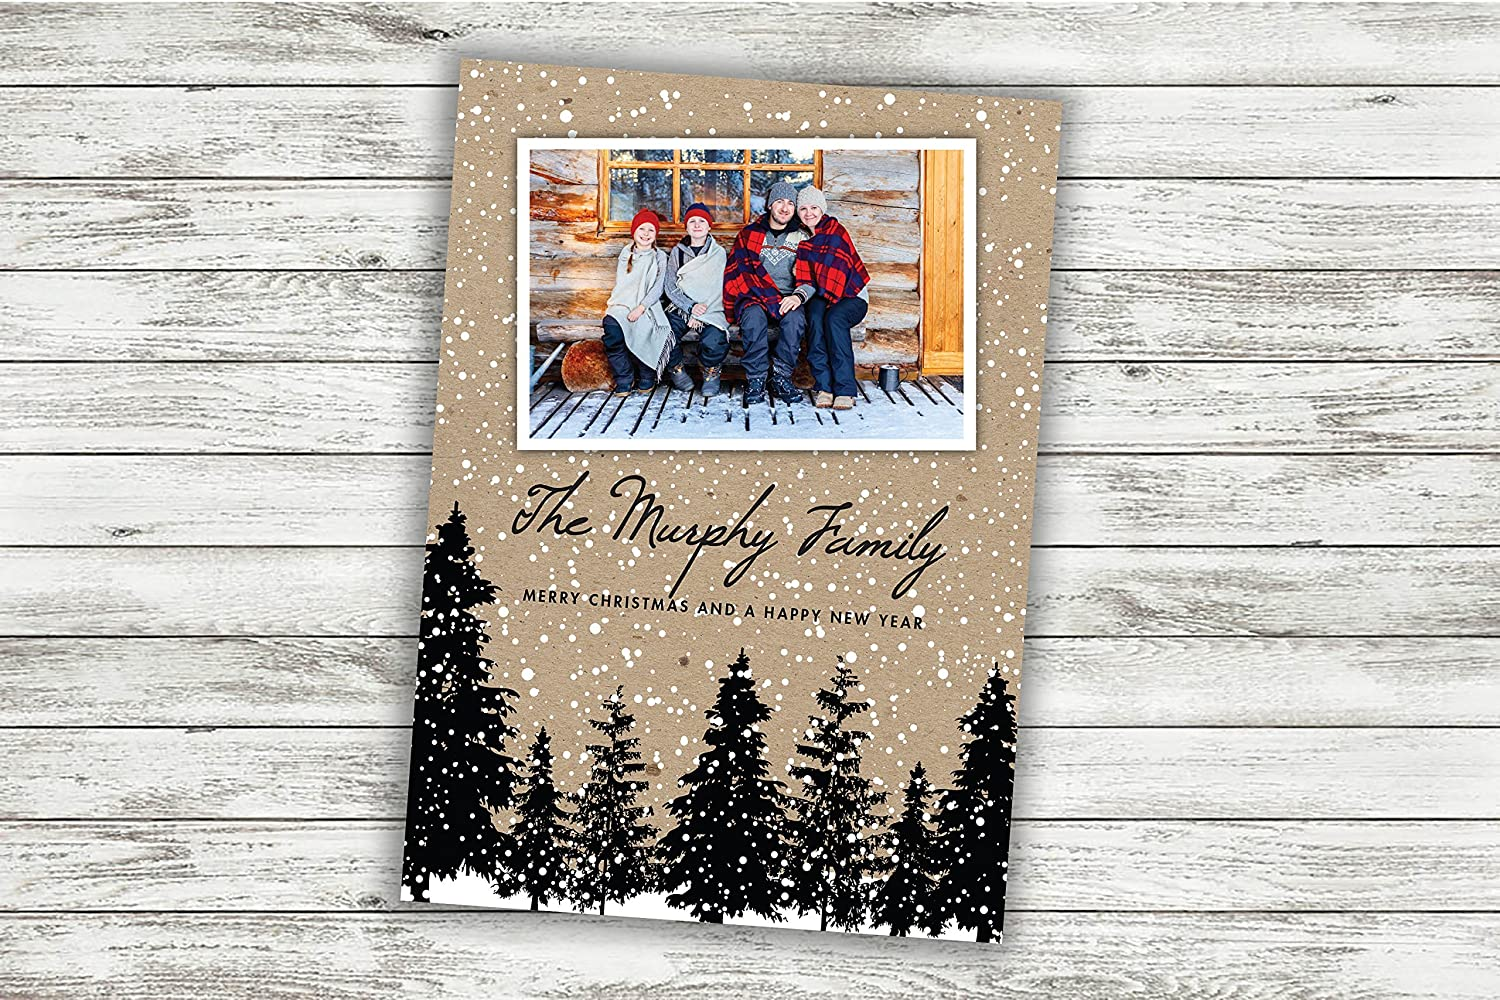 4 Tips on Designing the Best Holiday Card